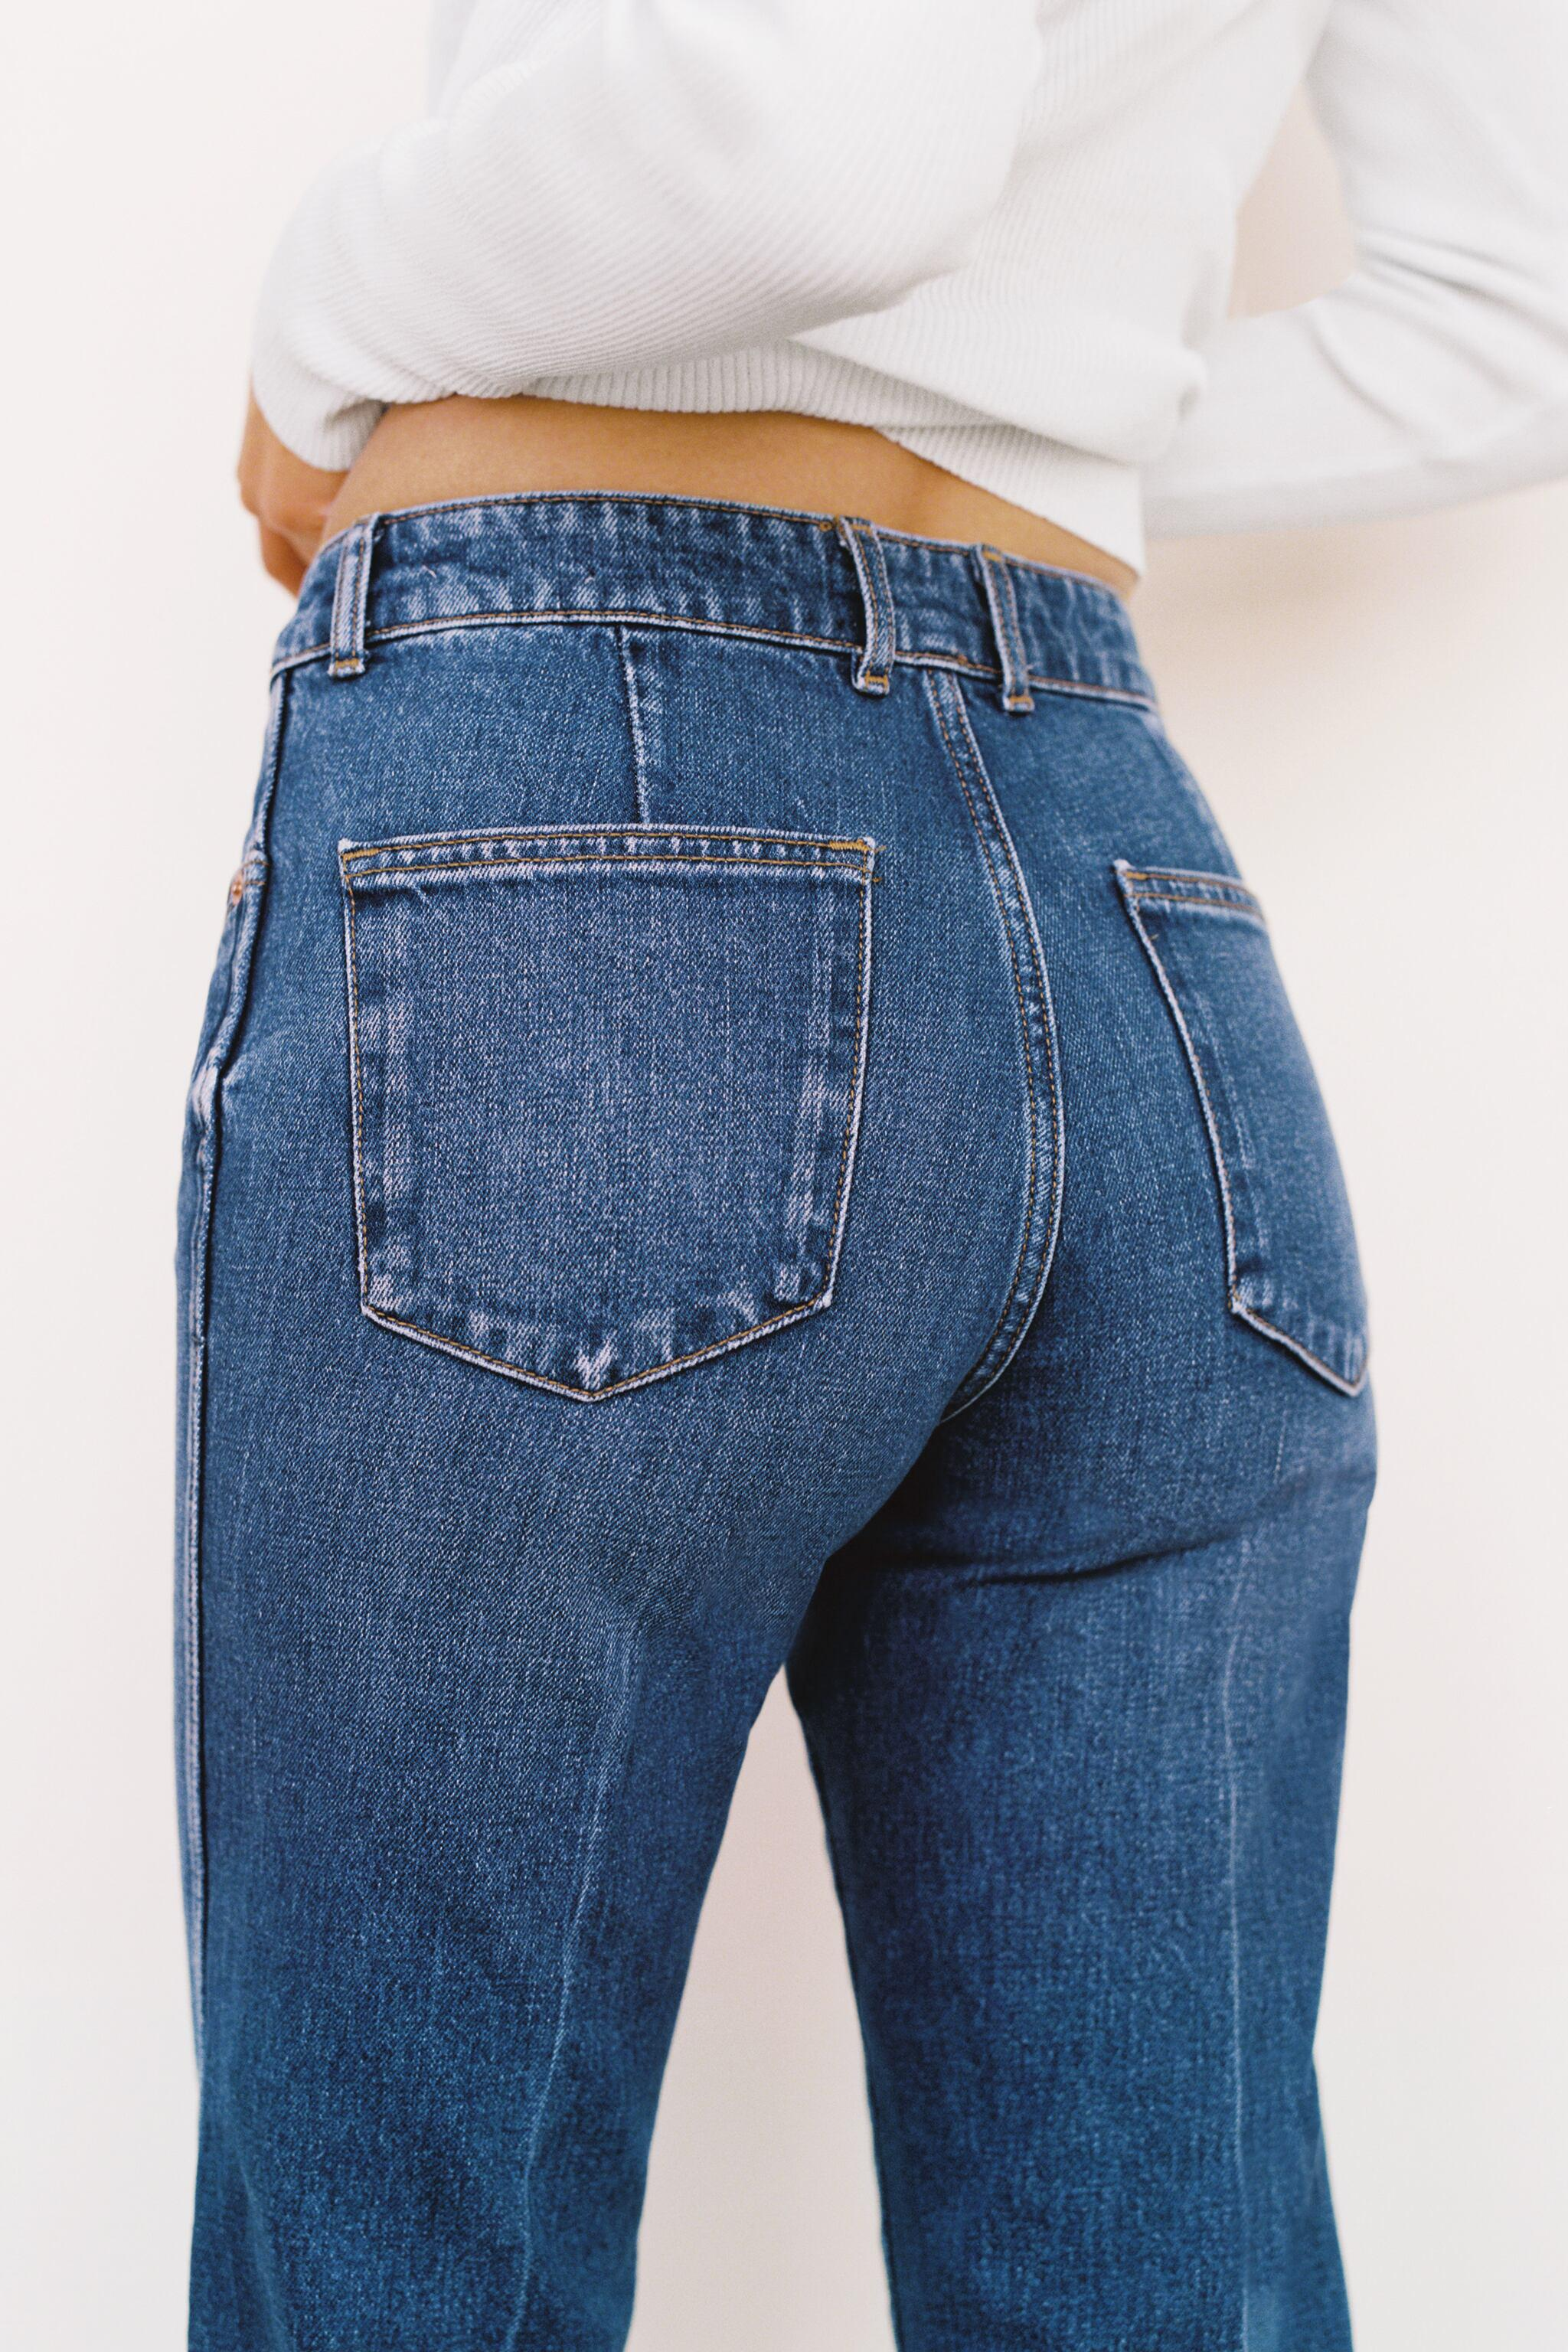 ZW THE NESS CROPPED FLARE JEANS 3